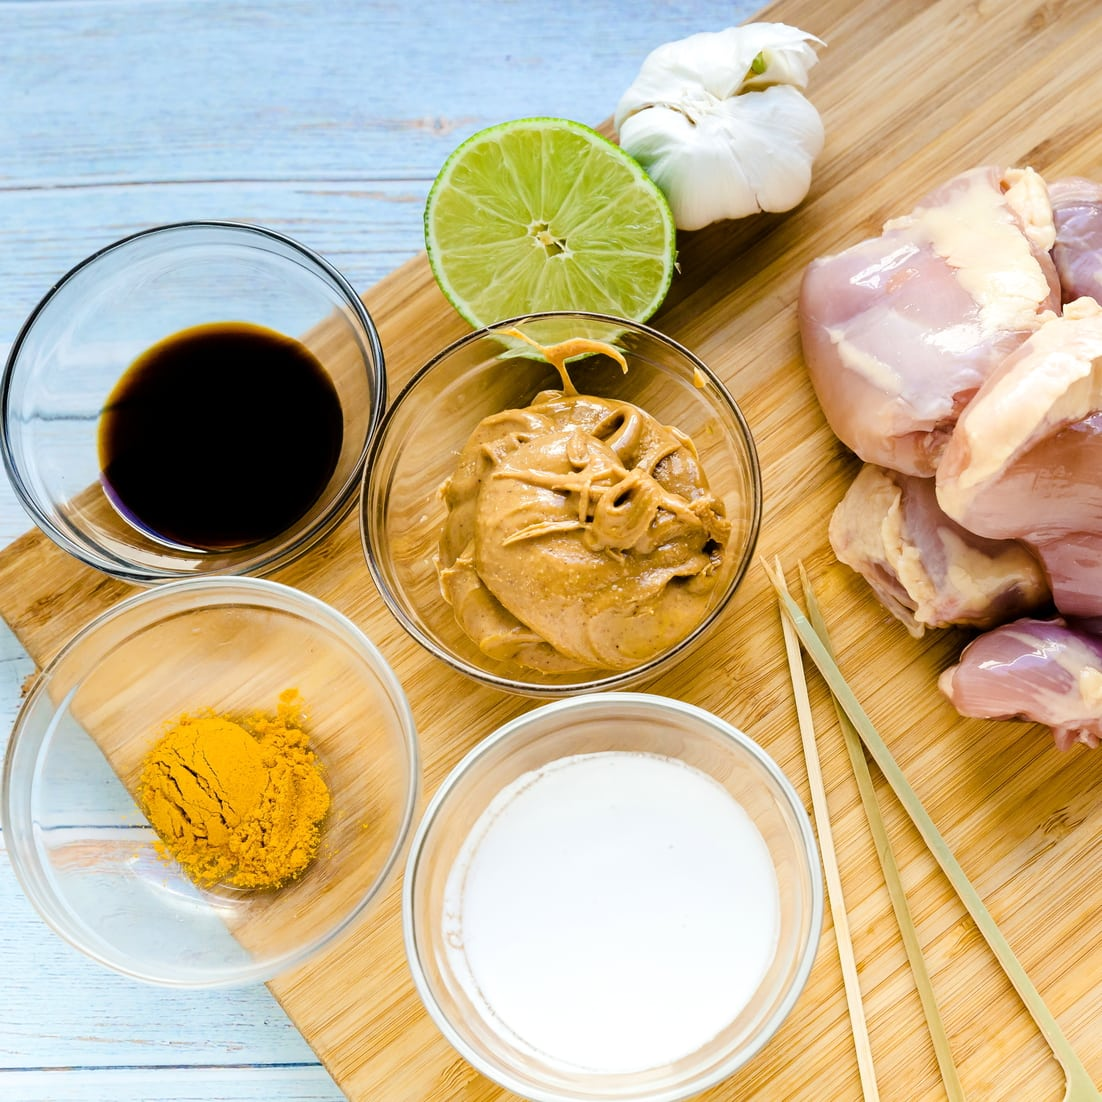 Ingredients for Keto Chicken Satay with Peanut Sauce laid out on wooden cutting board